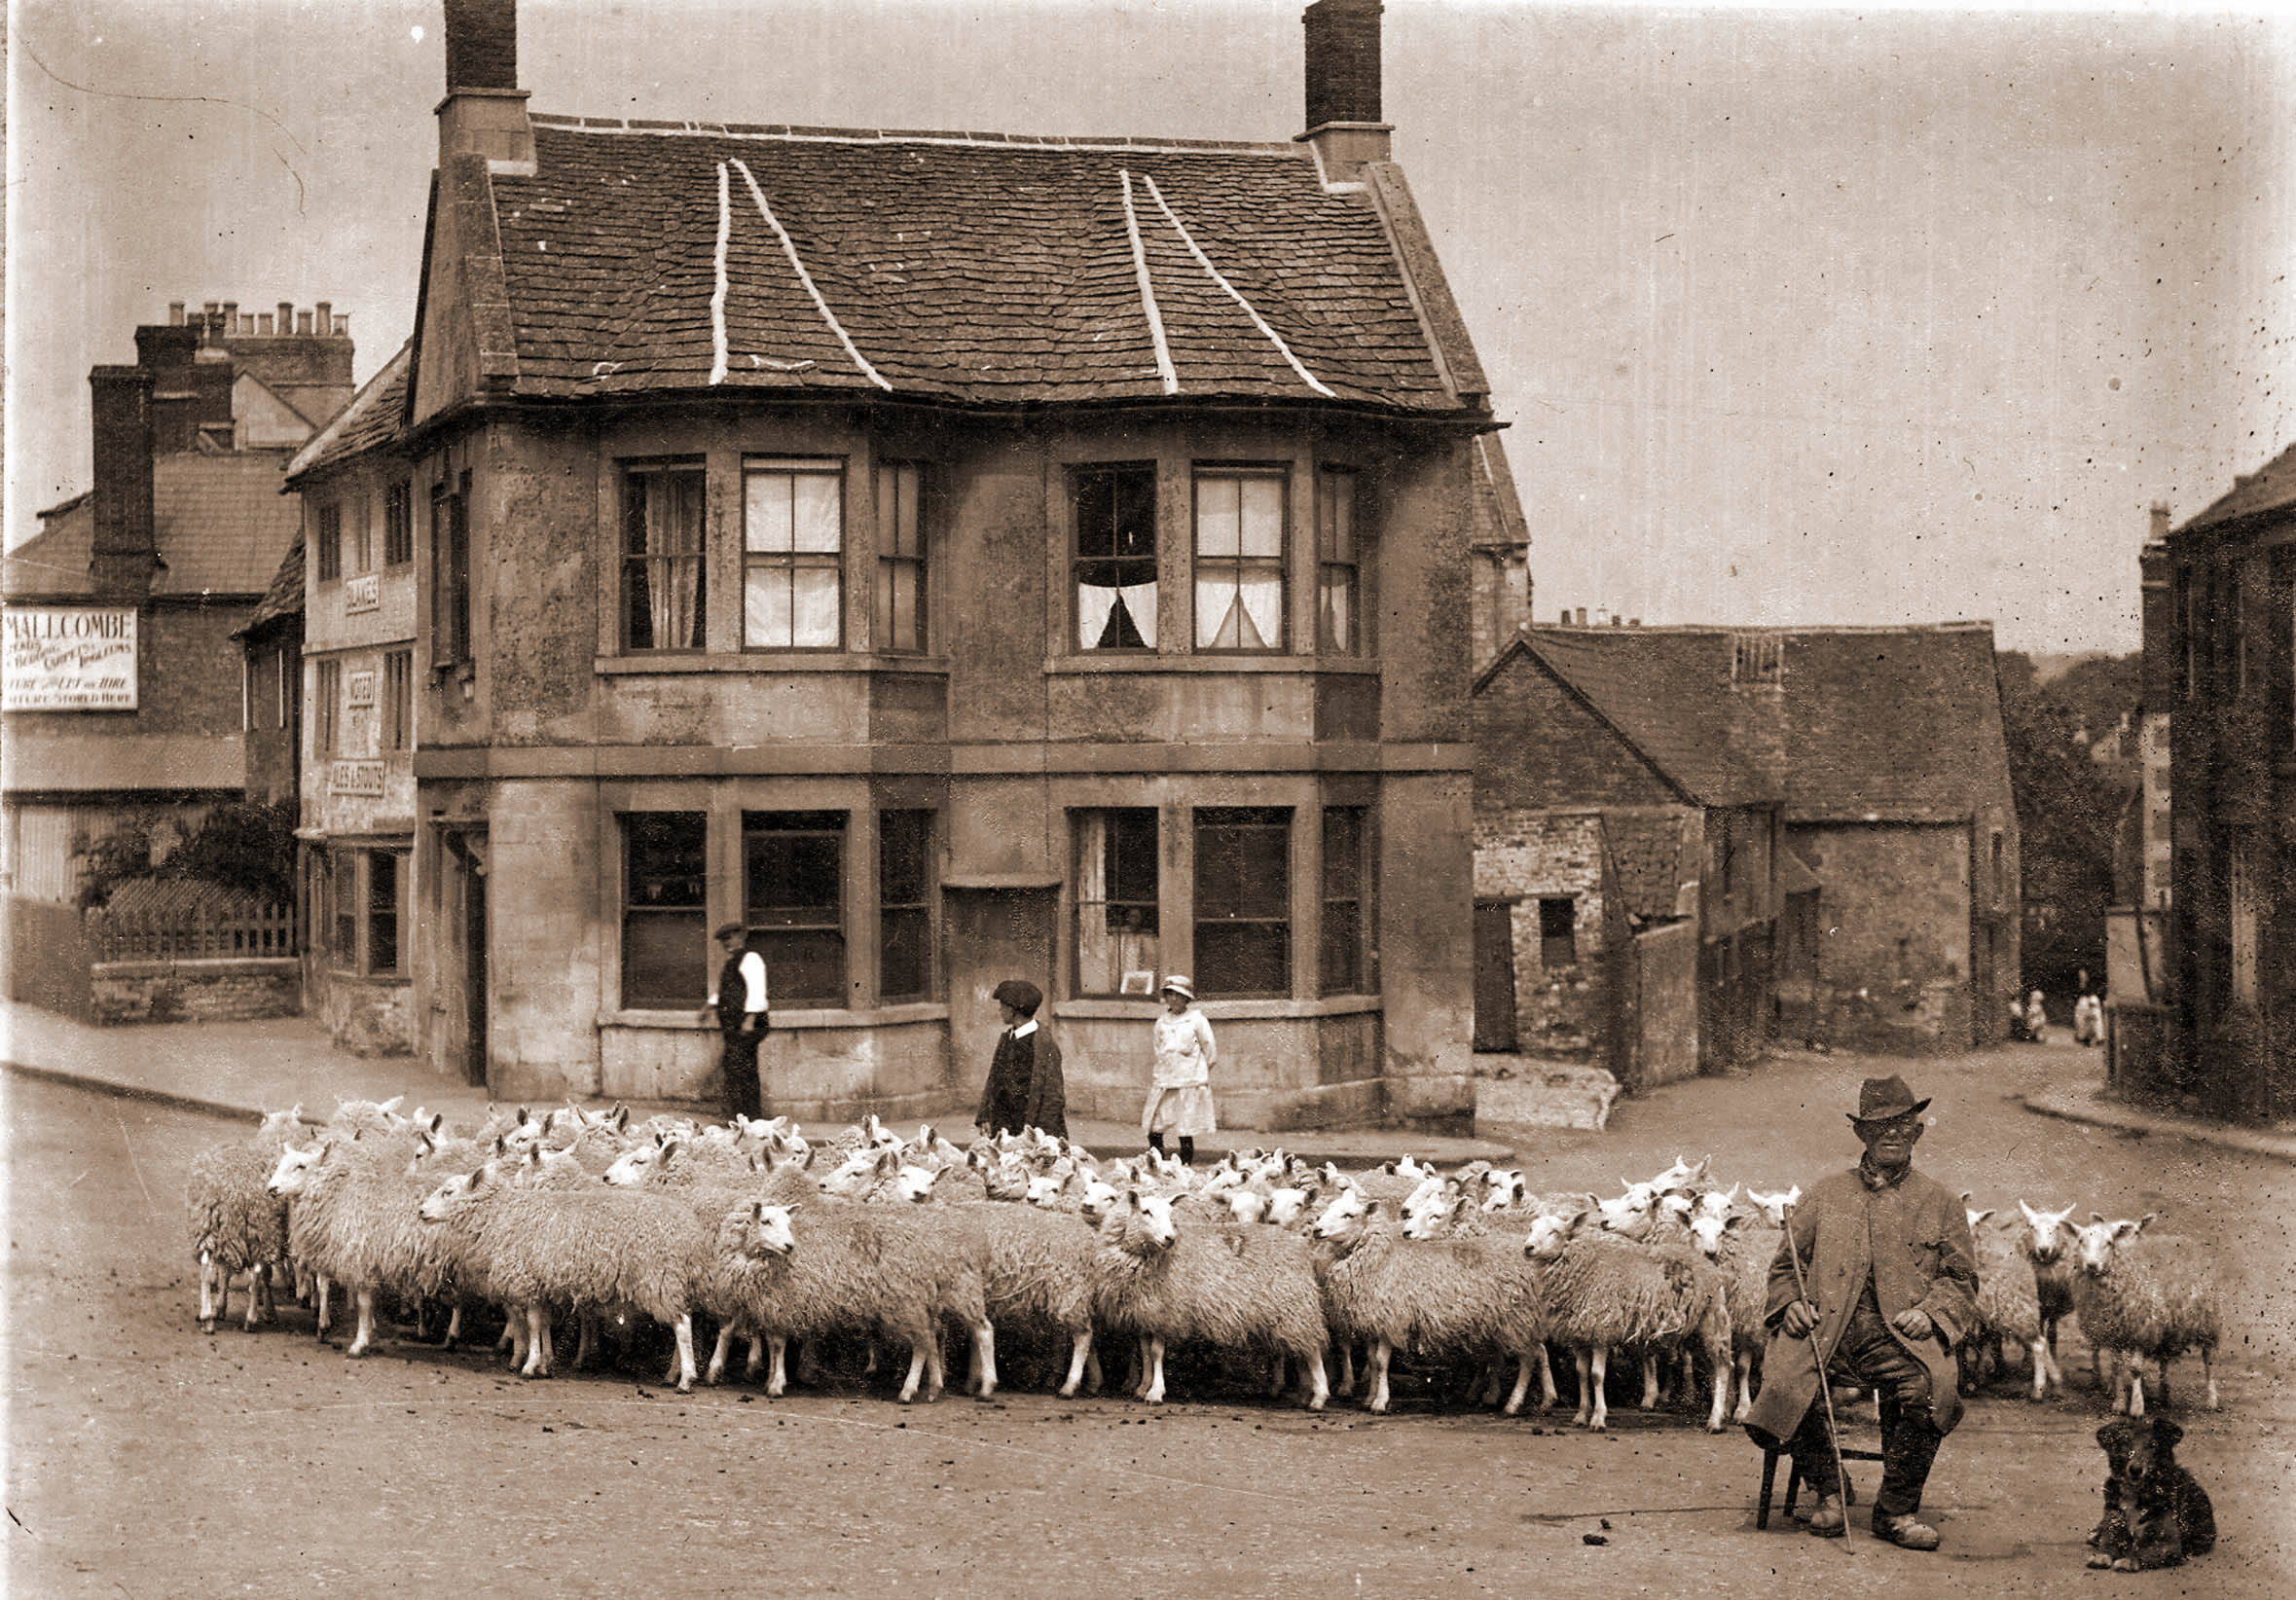 The Three Crowns locals will recreate this photo from the front of Andrew Swift and Kirsten Elliott's book, Inns of Wiltshire: in old photographs